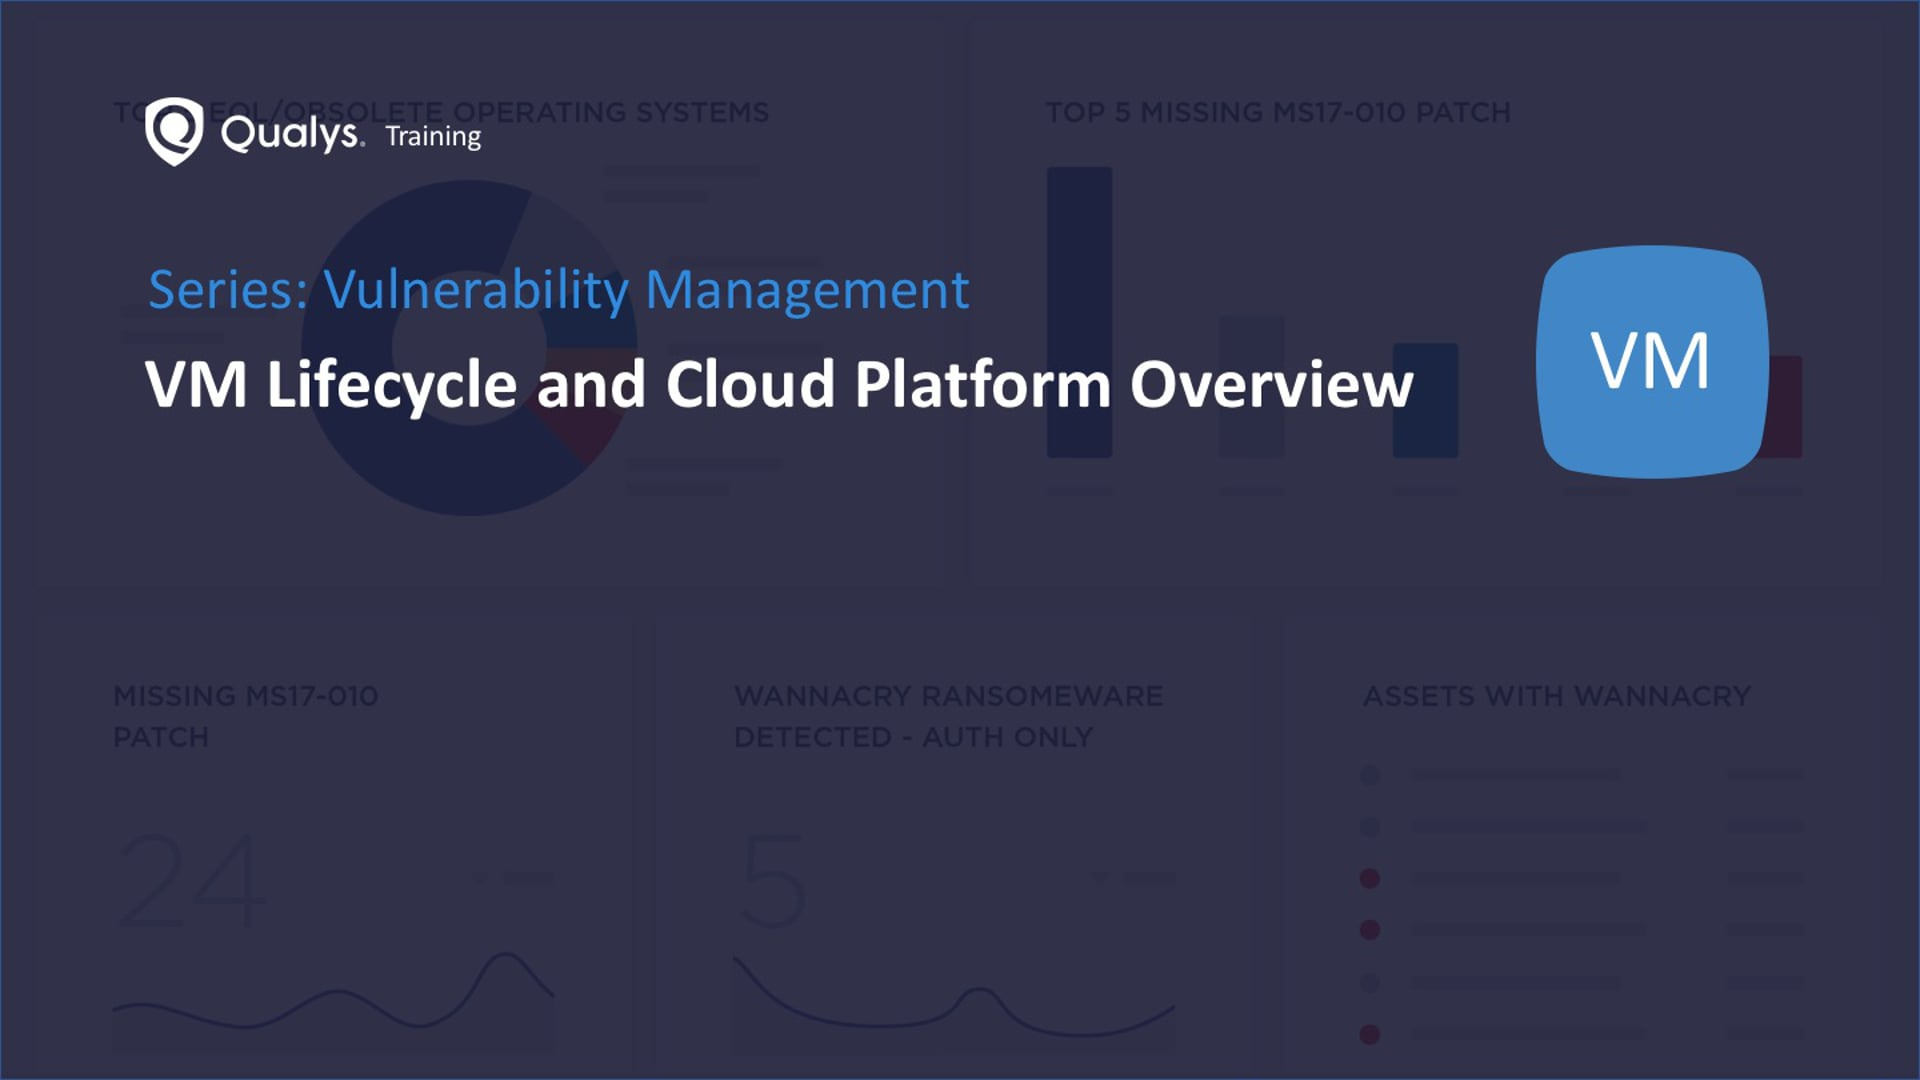 VM Lifecycle and Cloud Platform Overview